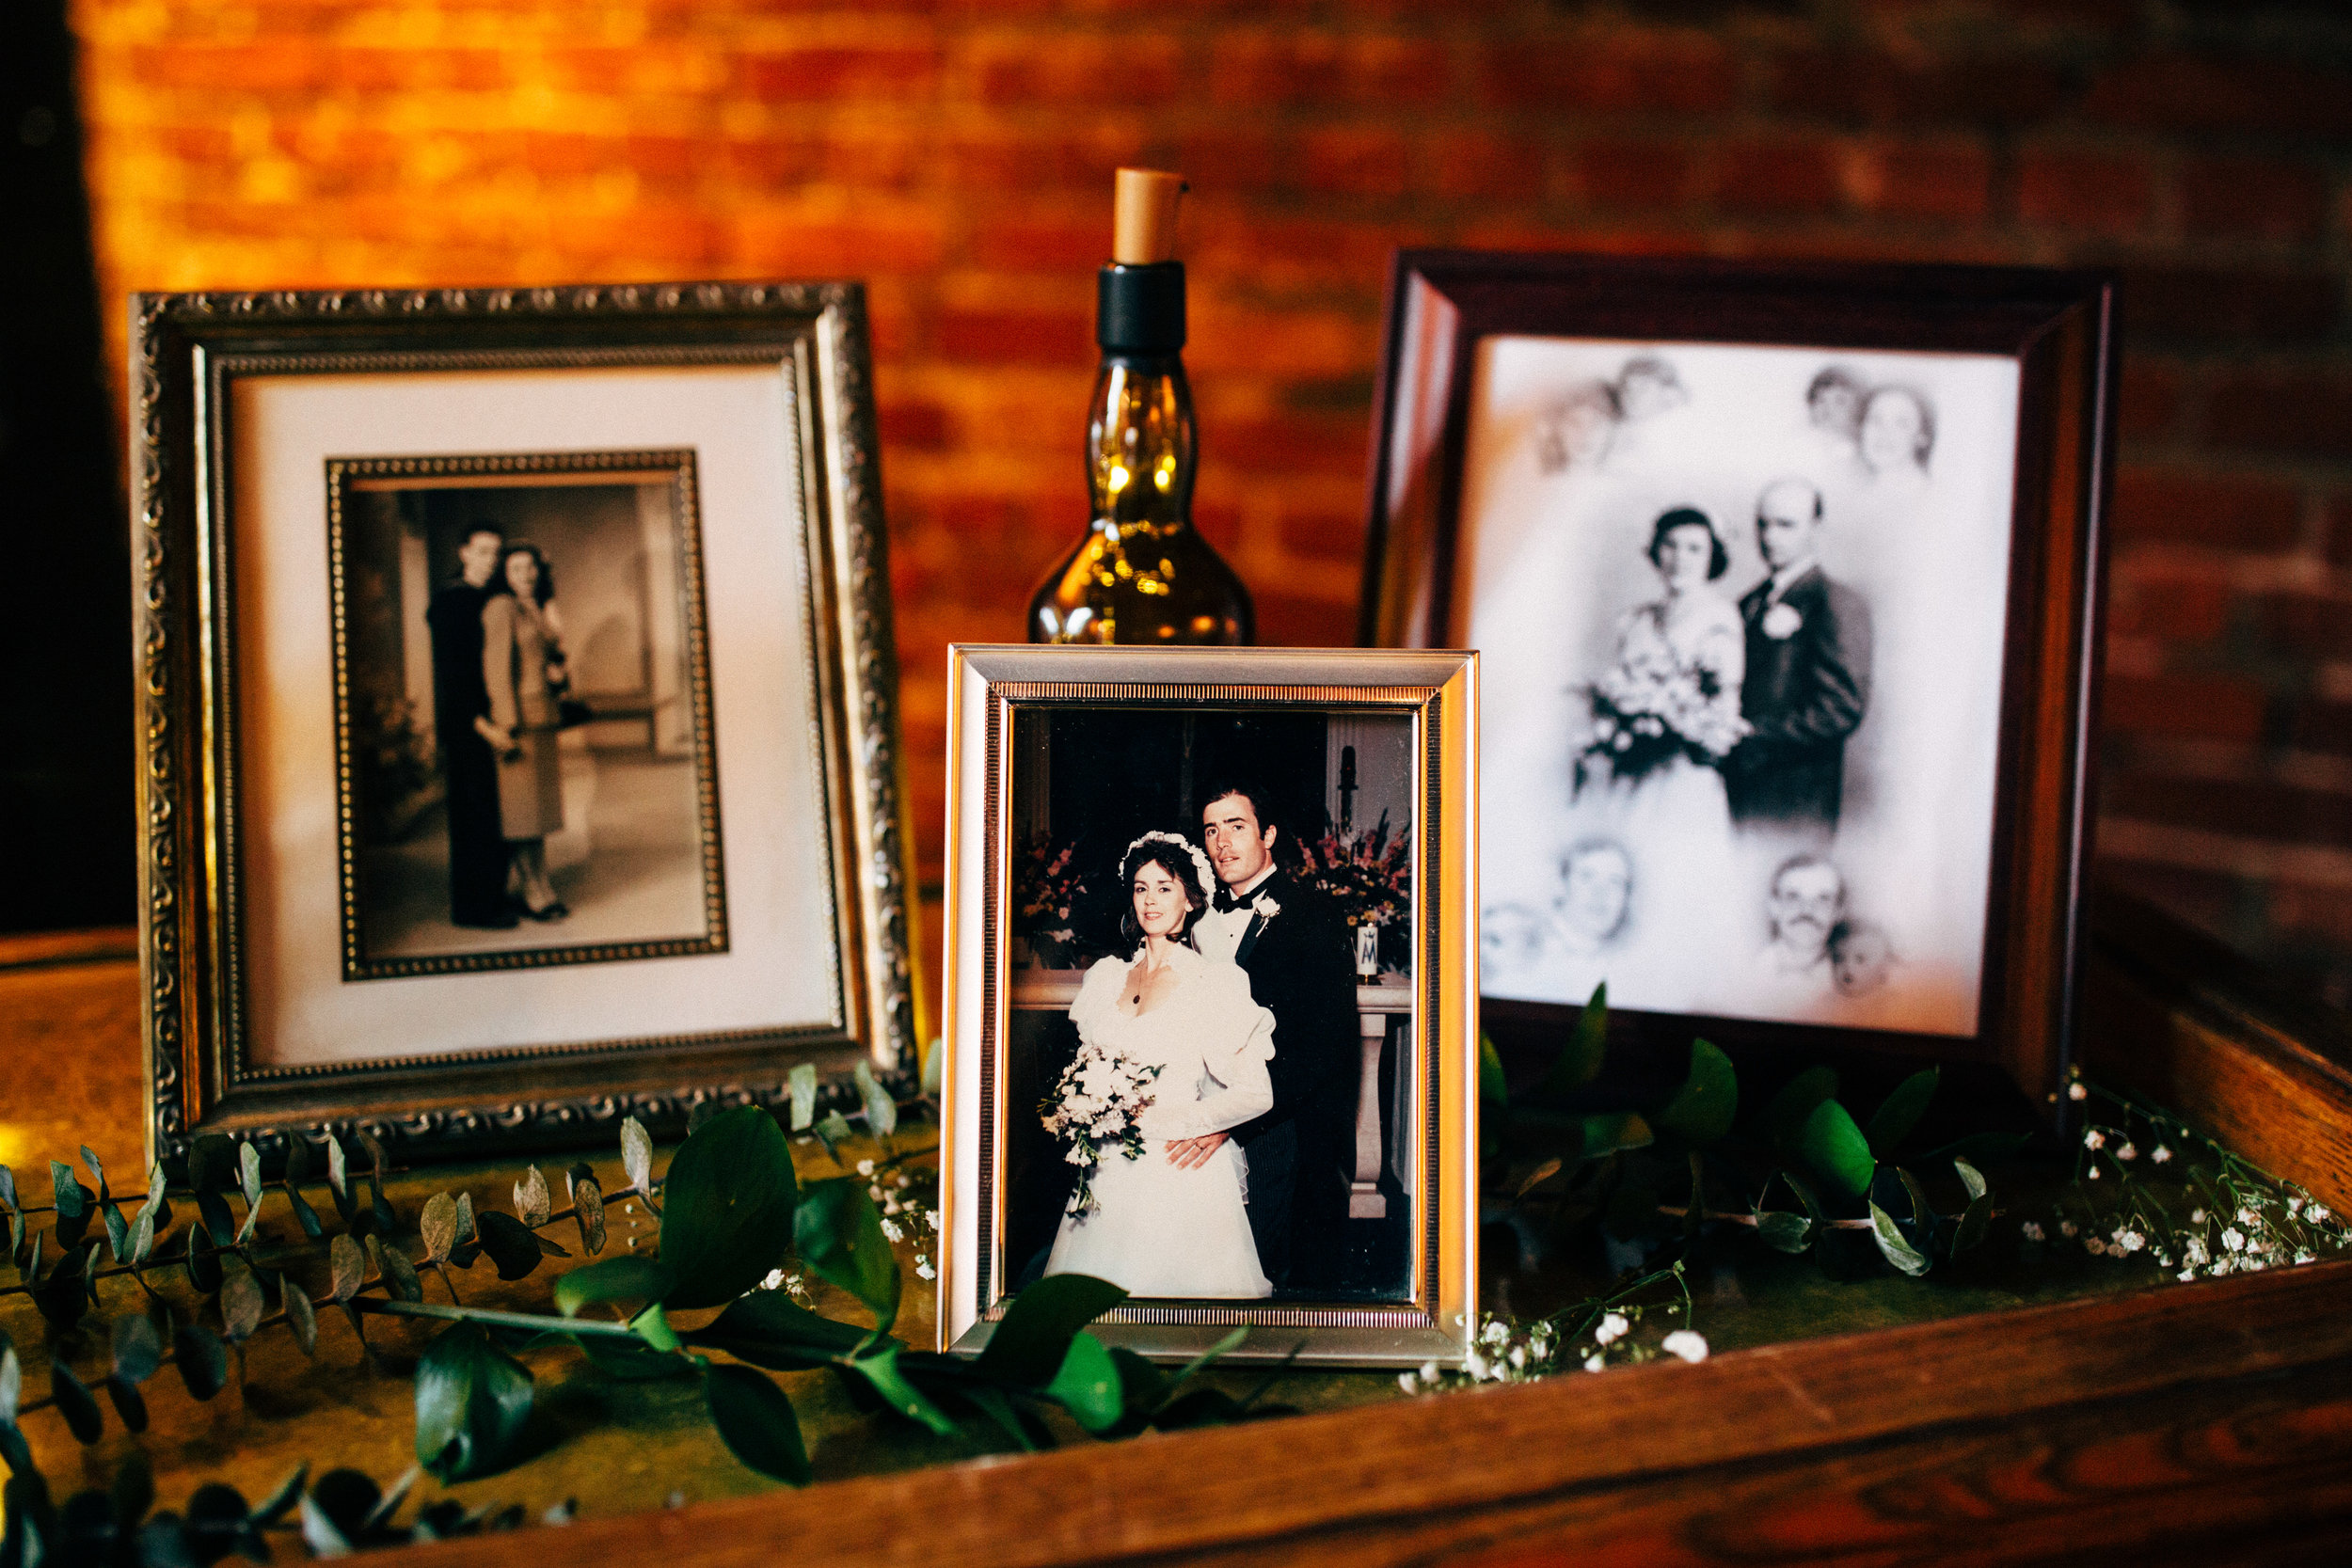 old wedding photo in a frame at wedding reception